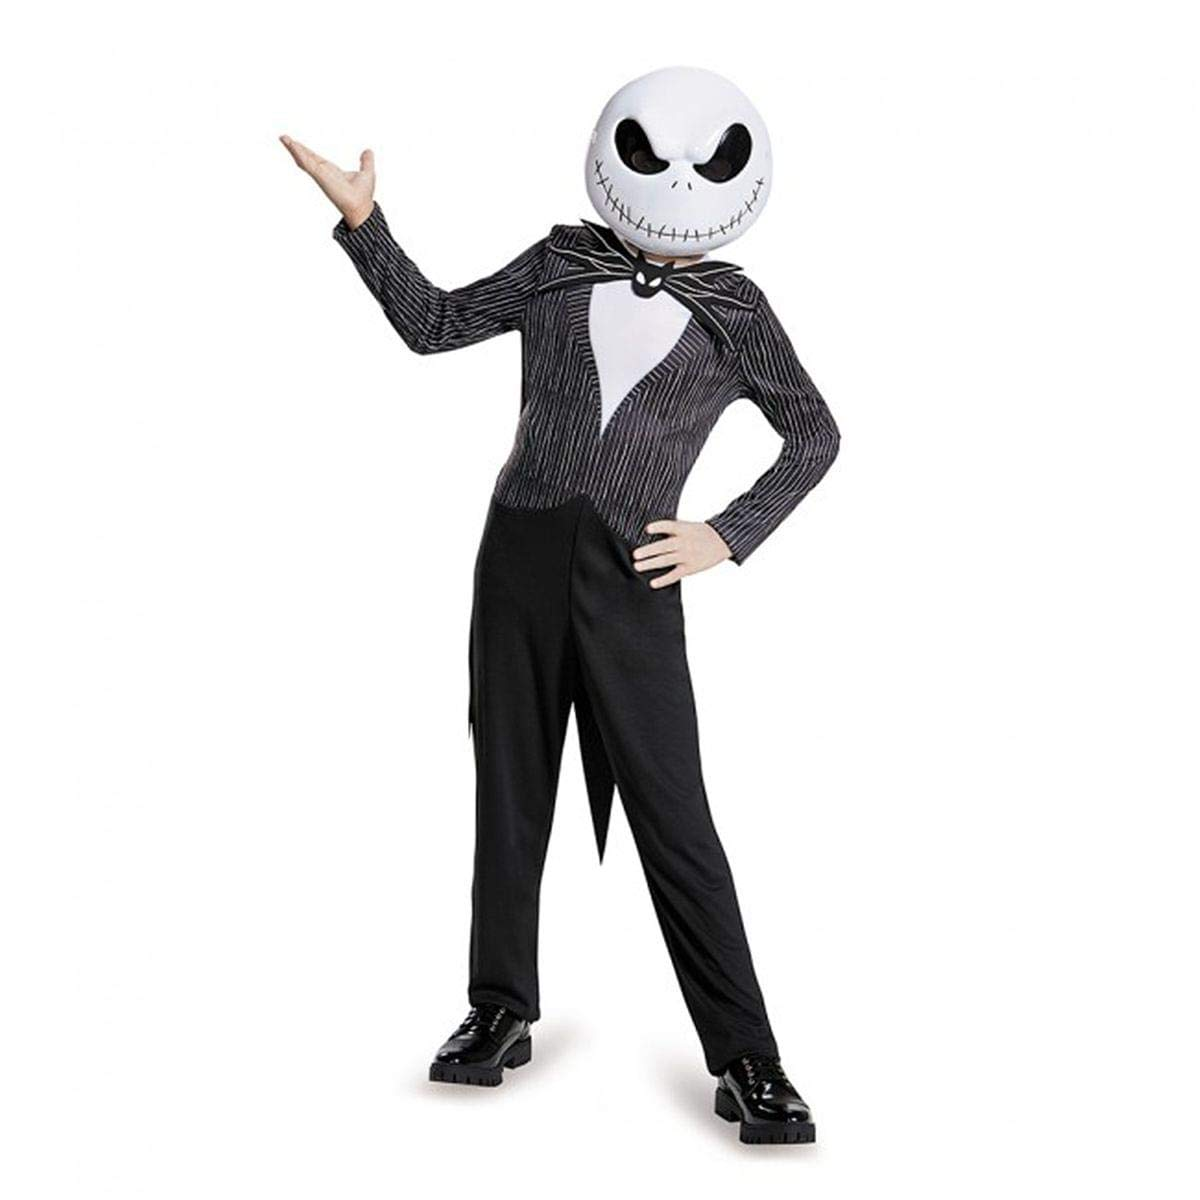 Large//10-12 Disguise Costumes Jack Skellington Child Classic Nightmare Before Christmas Disney Costume